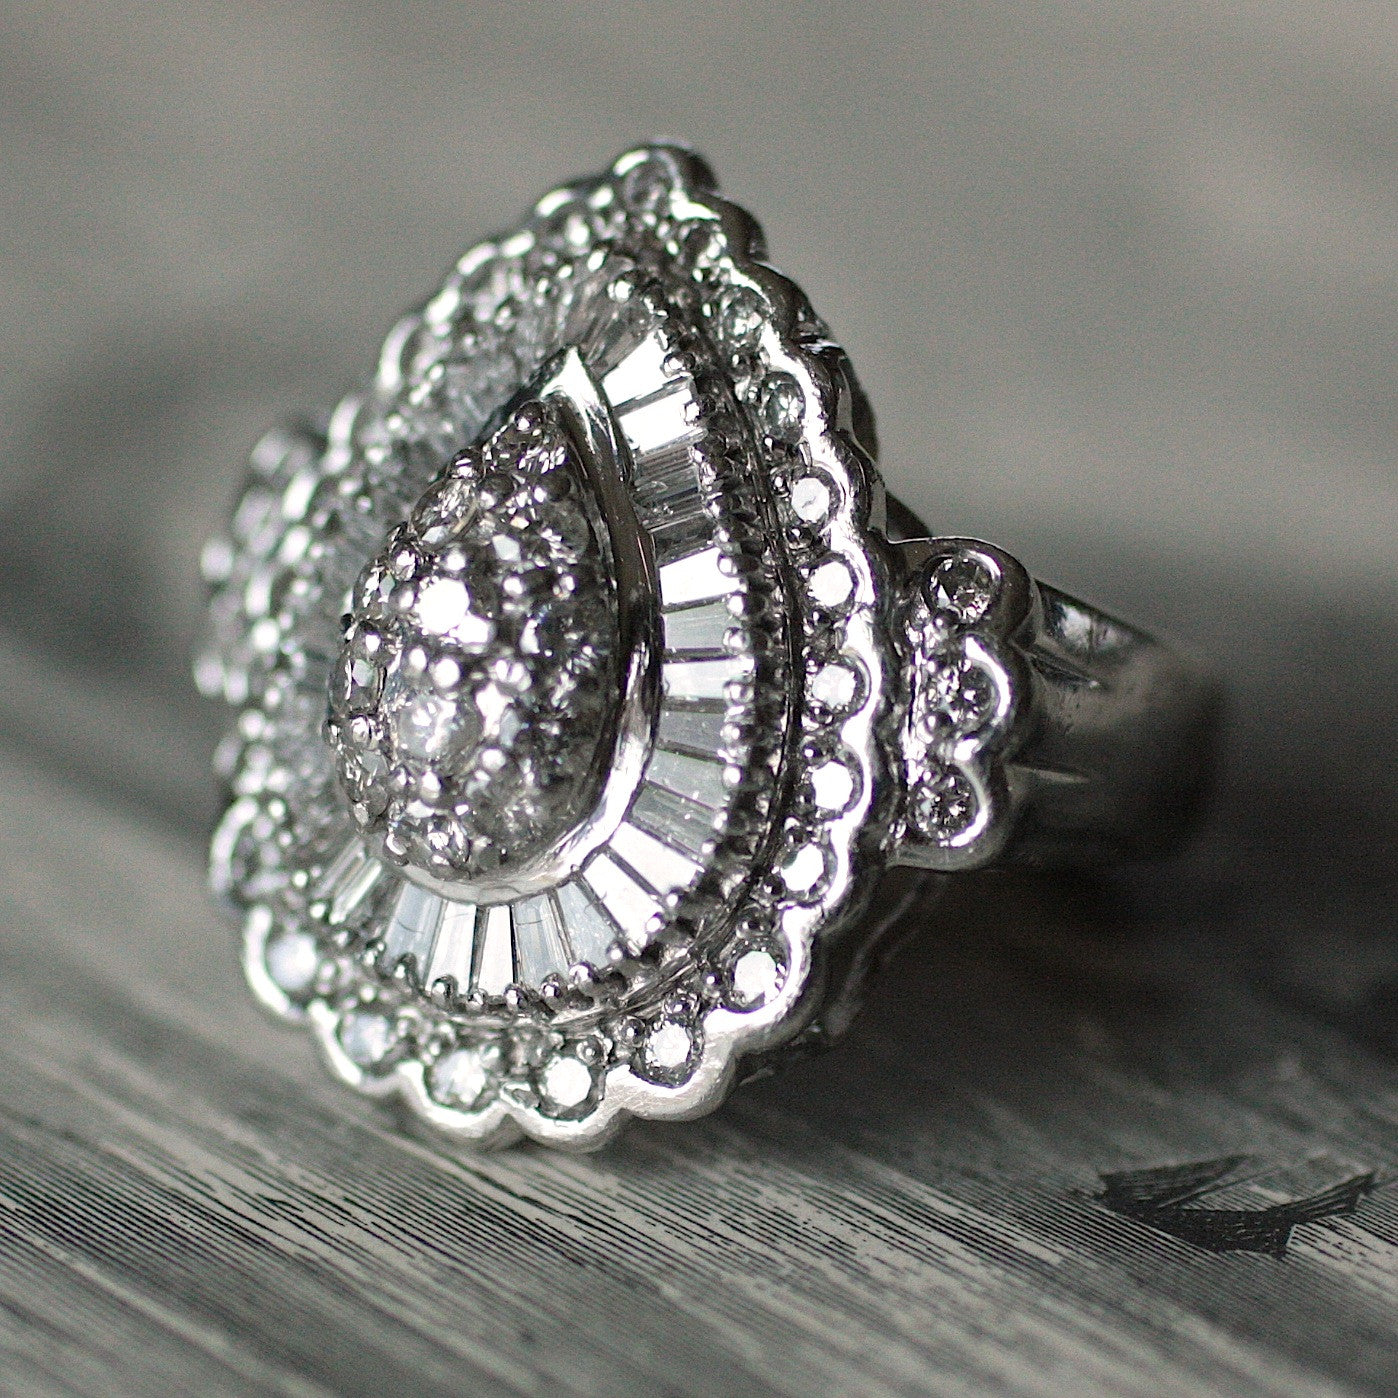 Circa 1950 Platinum & Diamond Cocktail Ring